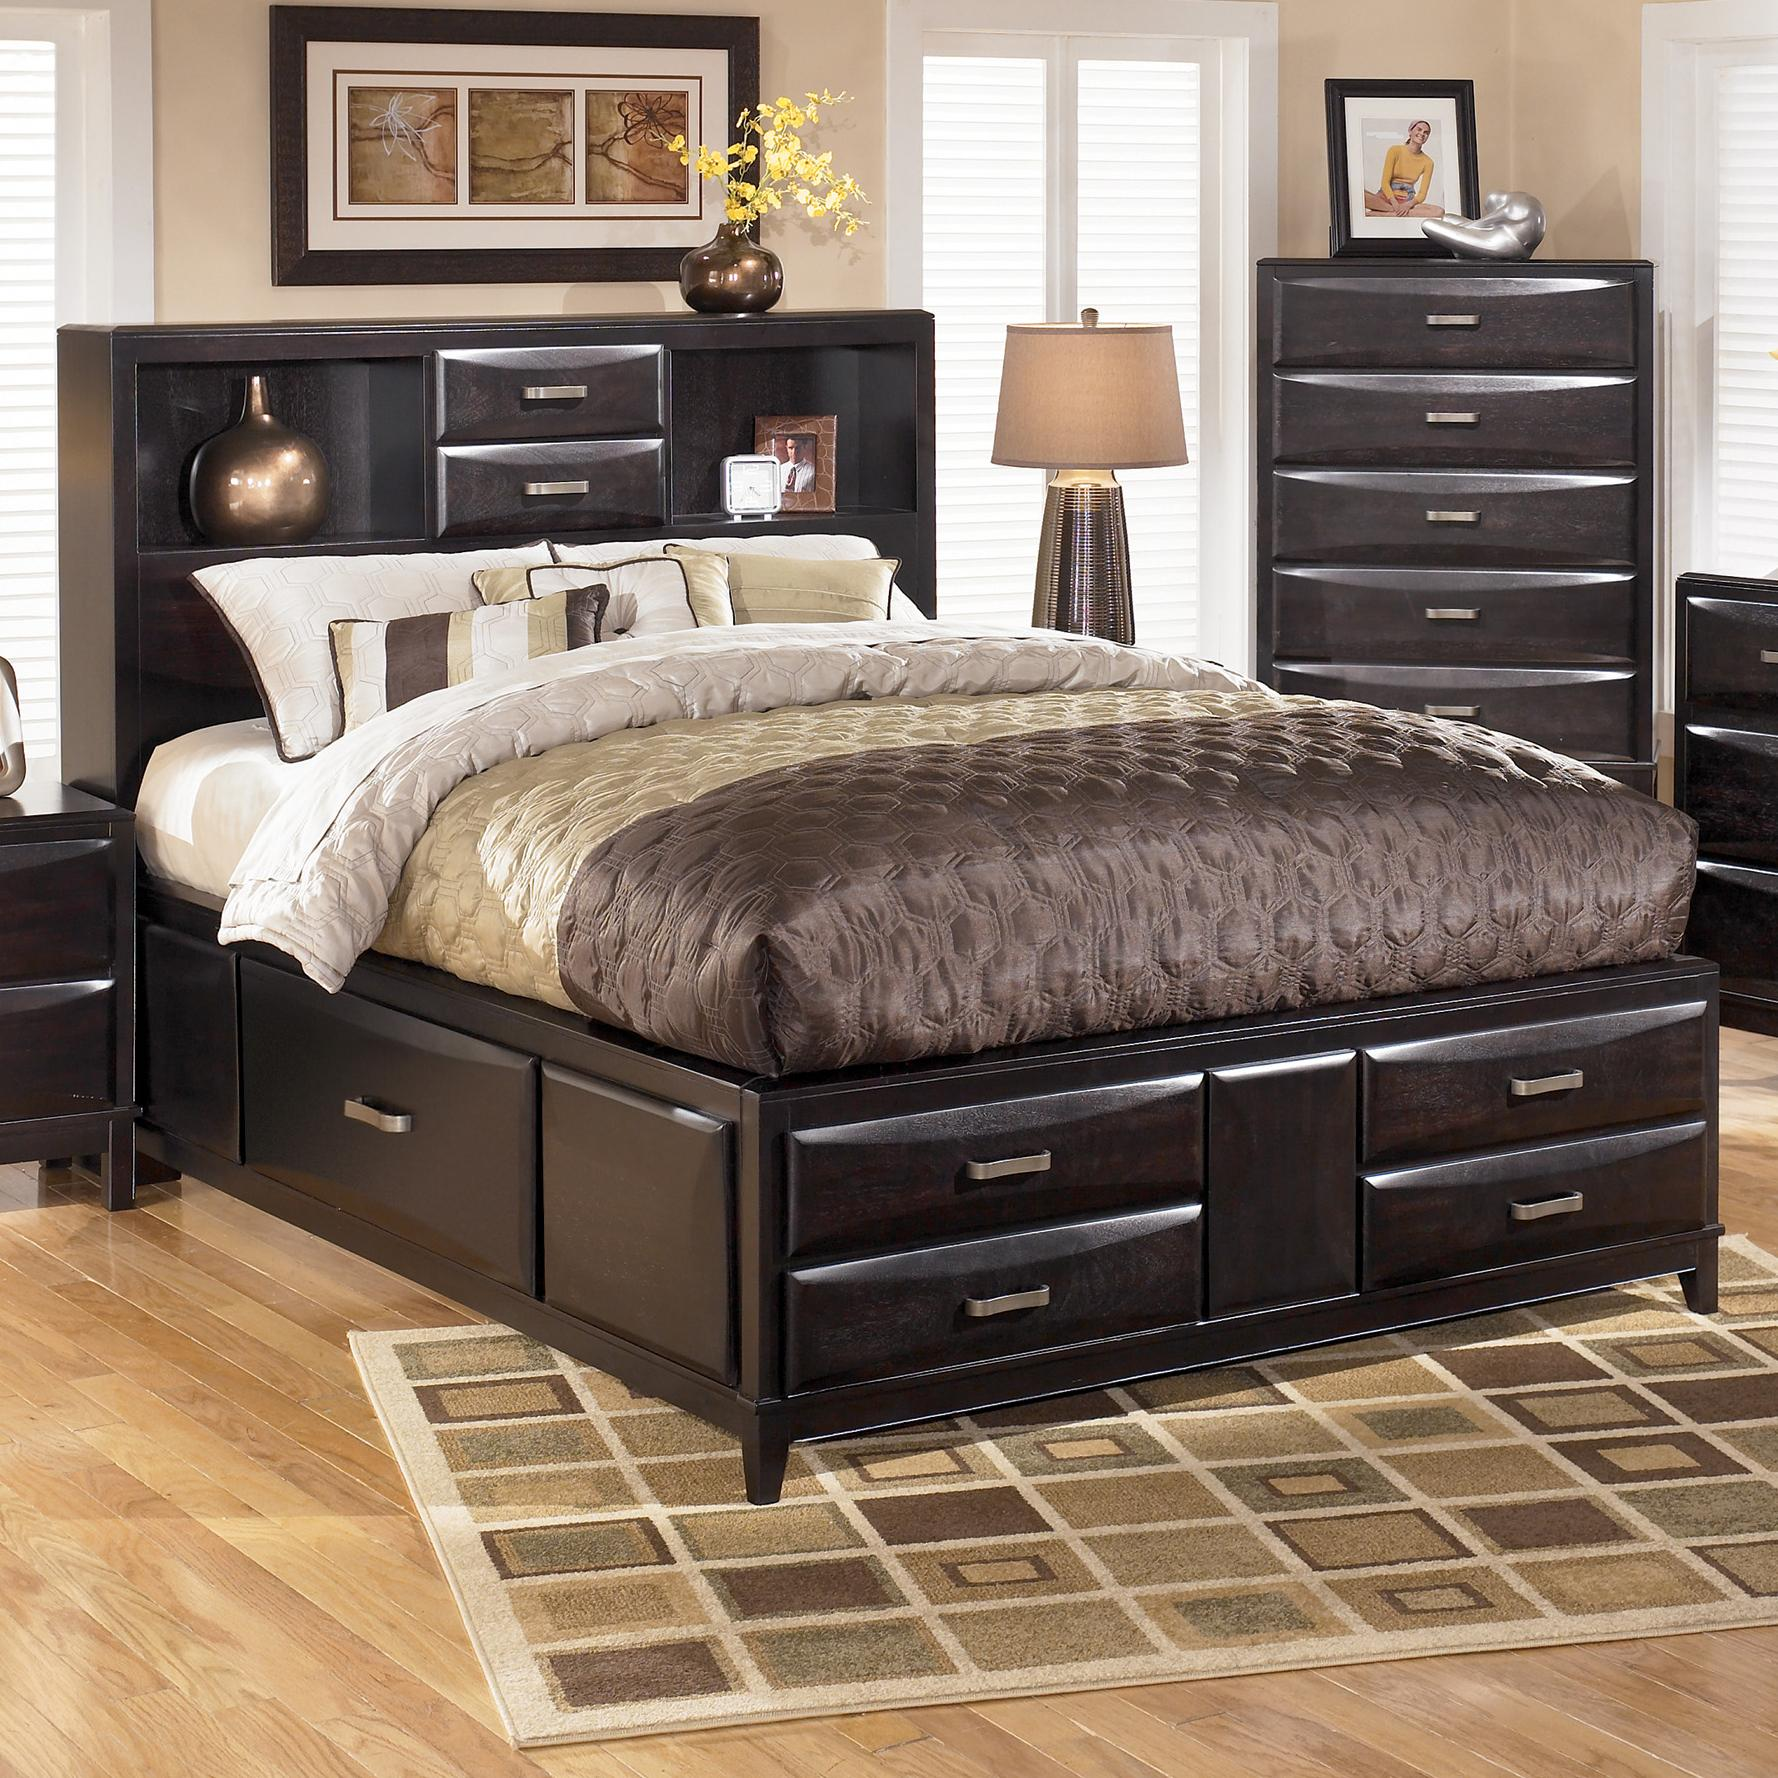 Ashley Furniture Kira Queen Storage Bed John V Schultz Furniture Captain 39 S Beds